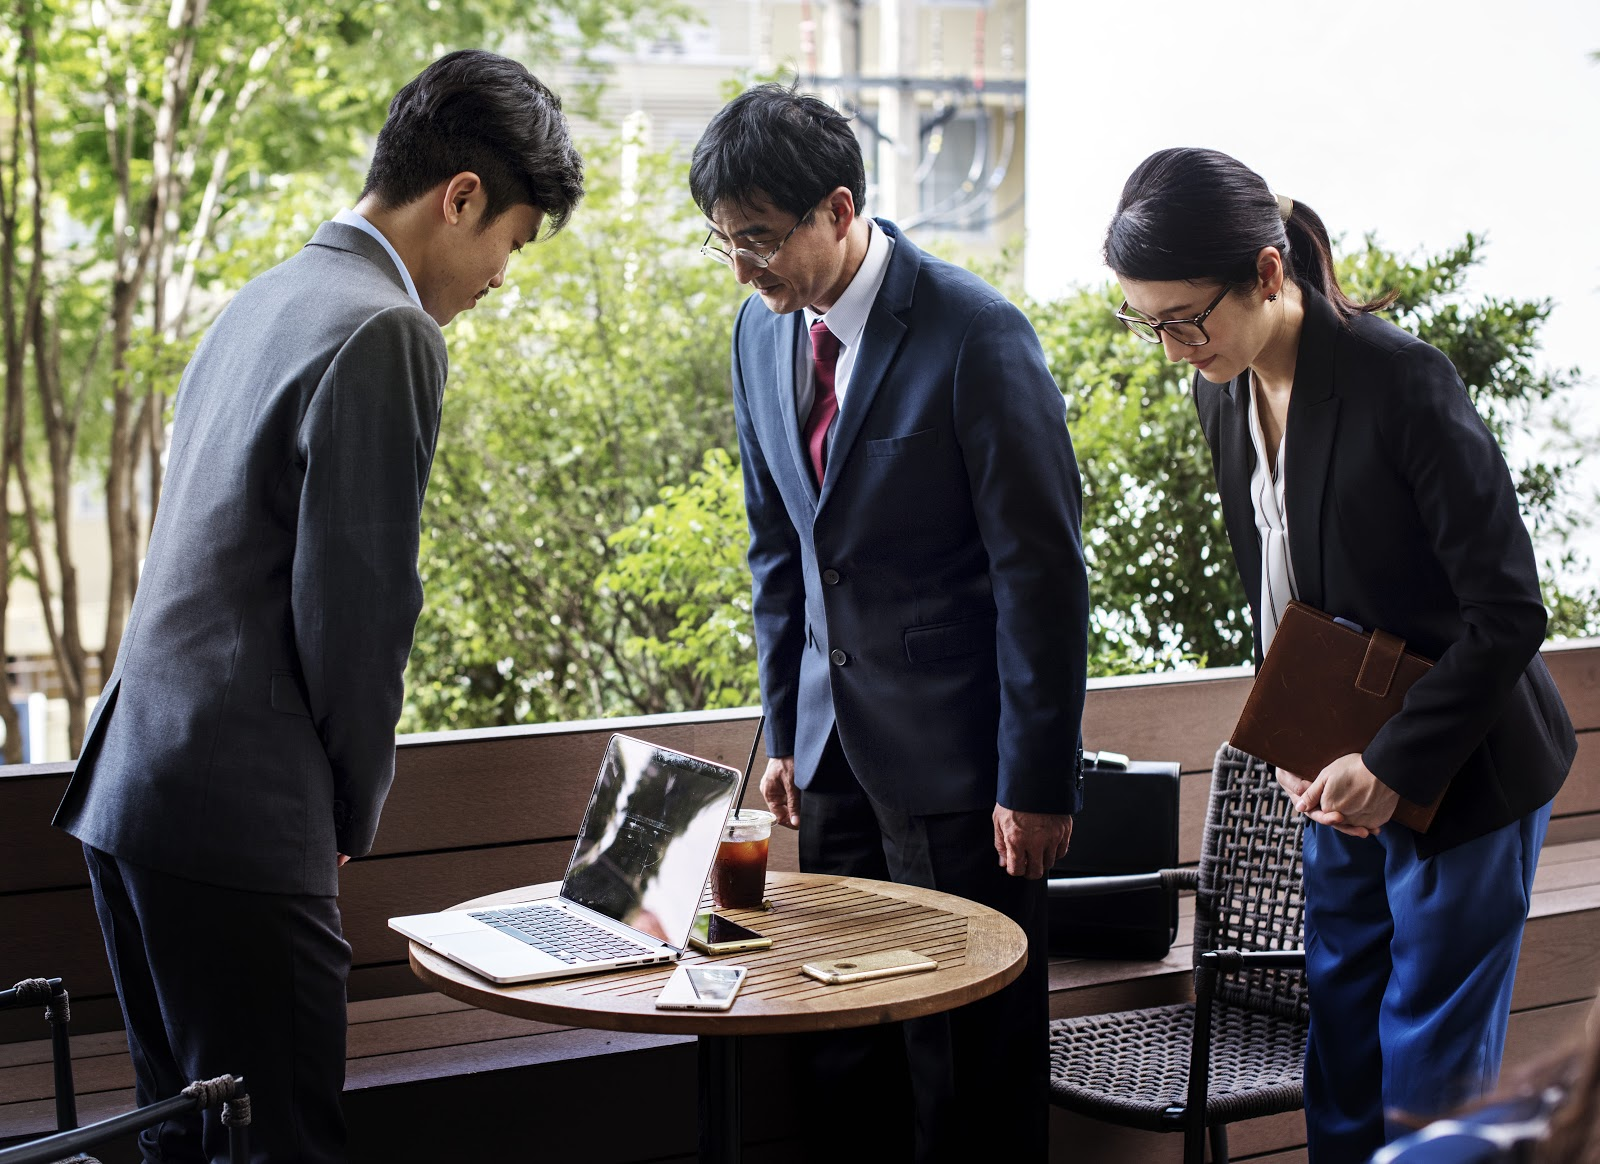 Japanese people appreciate applicants who understand Japanese culture.